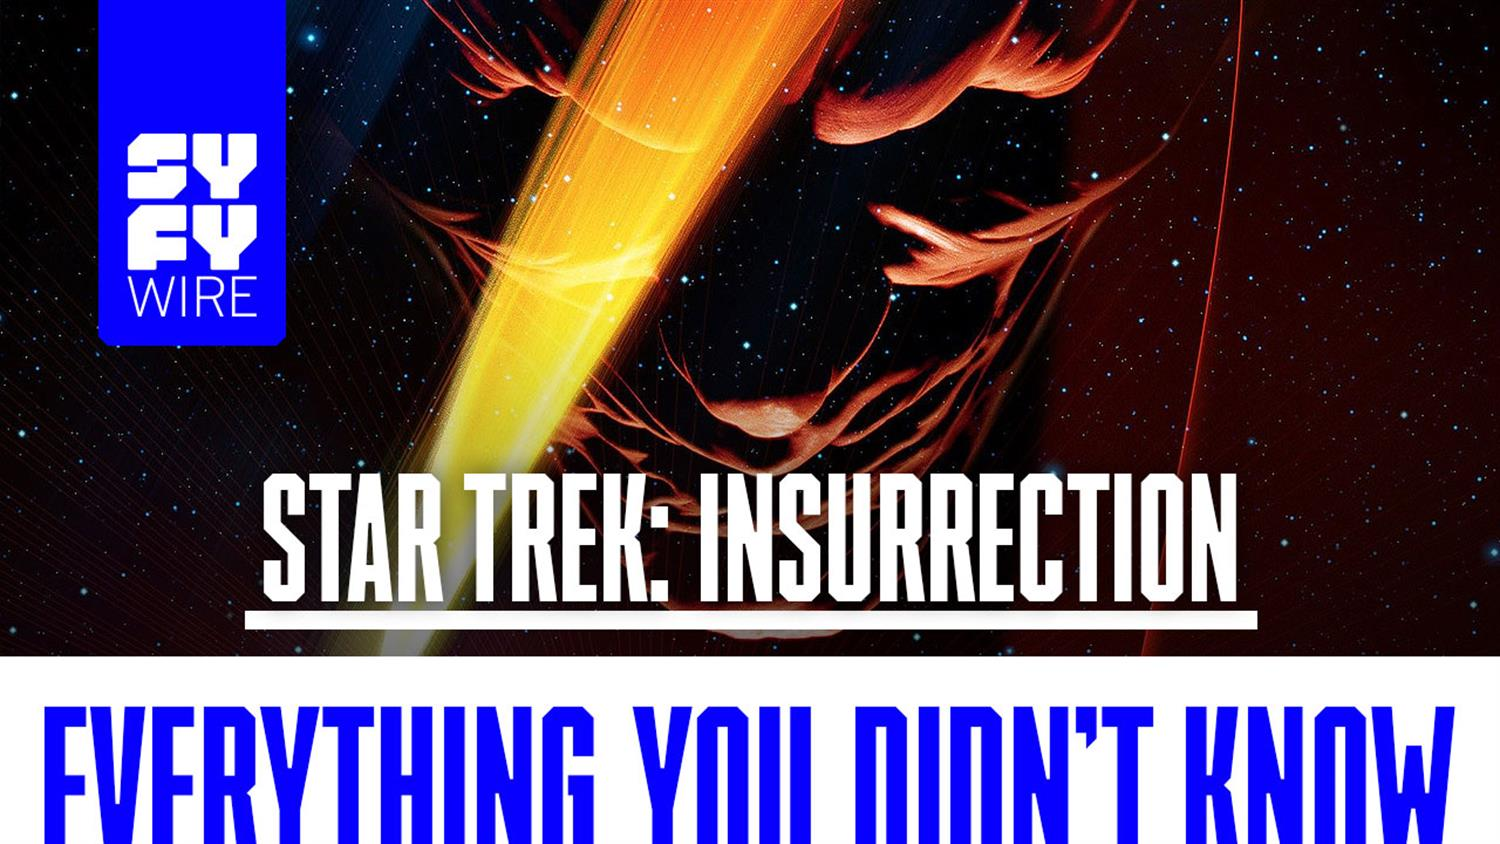 Star Trek: Insurrection Everything You Didn't Know